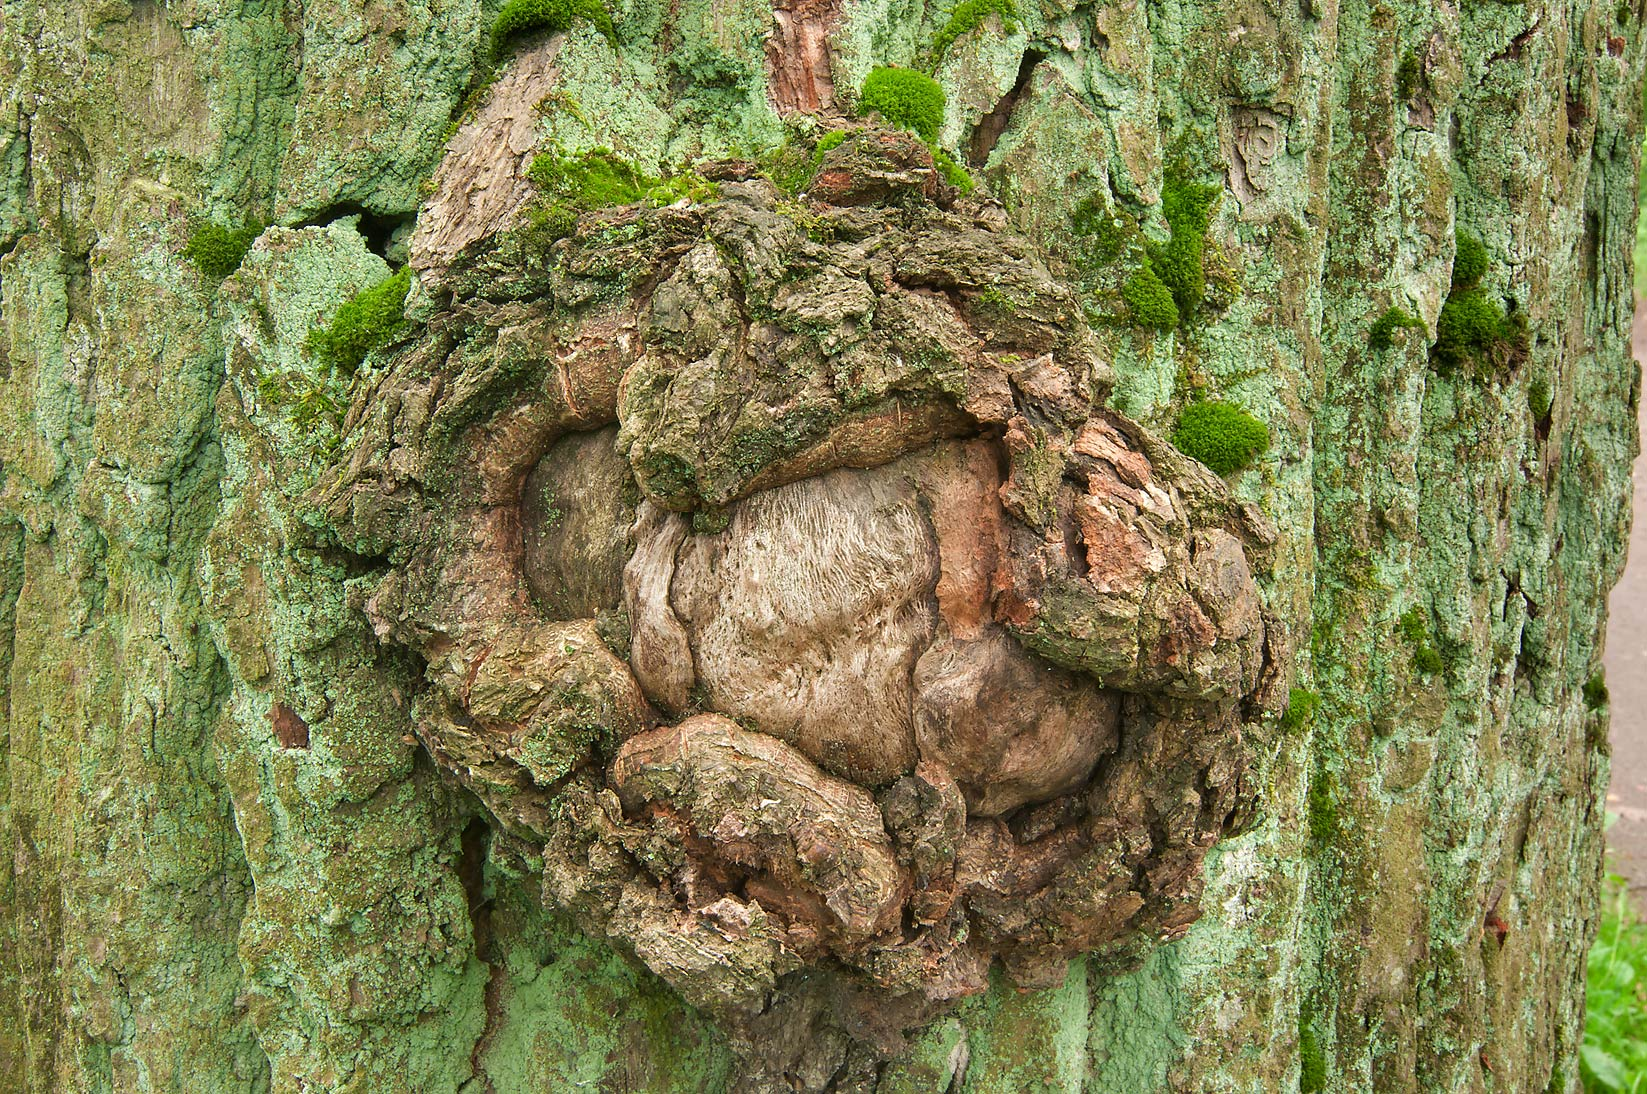 Rounded outgrowth (burl) on a tree trunk in...a suburb of St.Petersburg, Russia